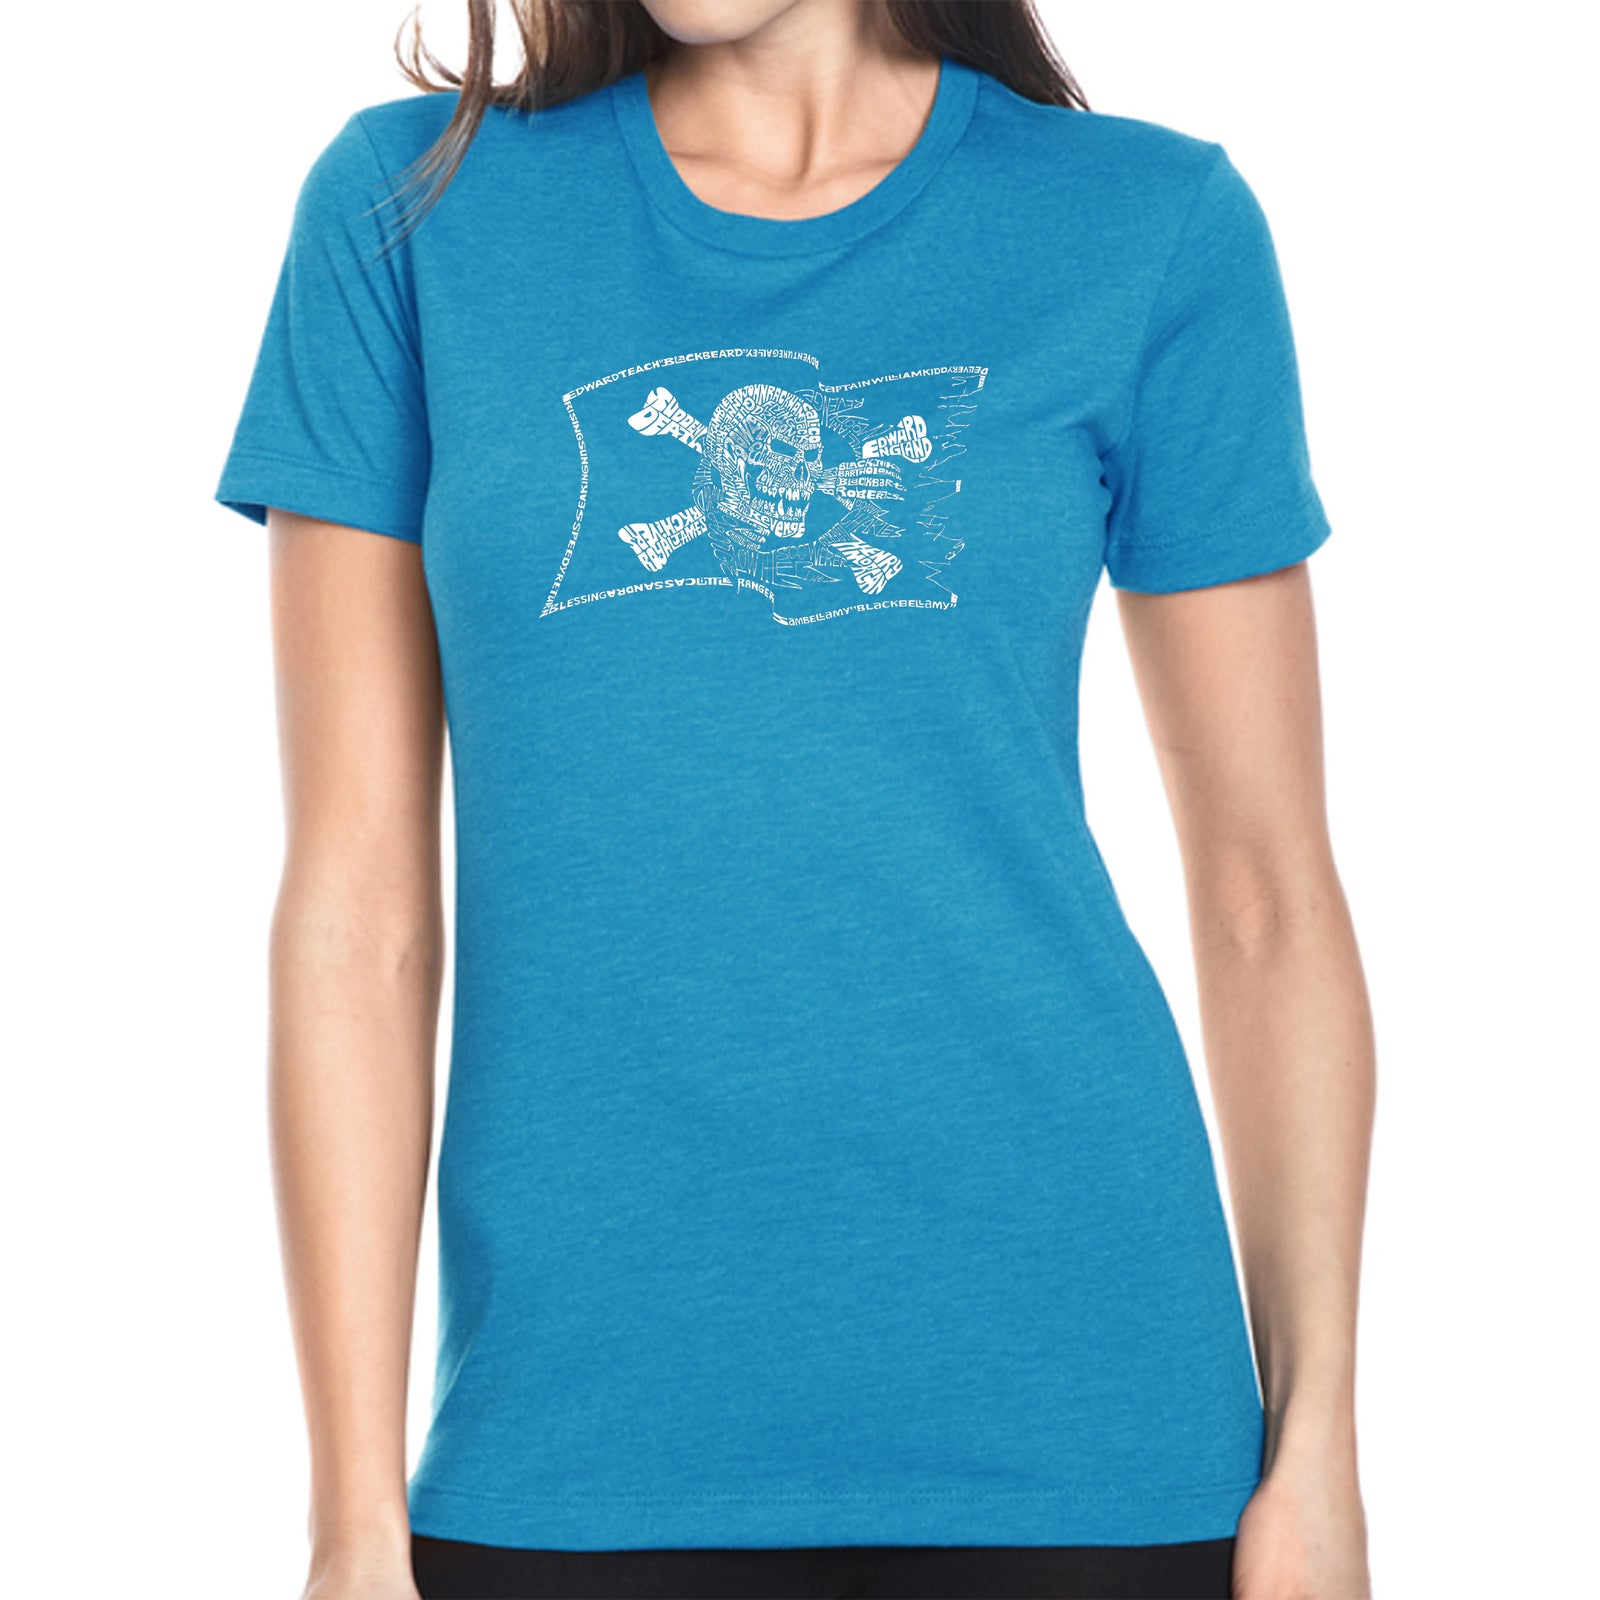 Women's Premium Blend Word Art T-shirt - FAMOUS PIRATE CAPTAINS AND SHIPS